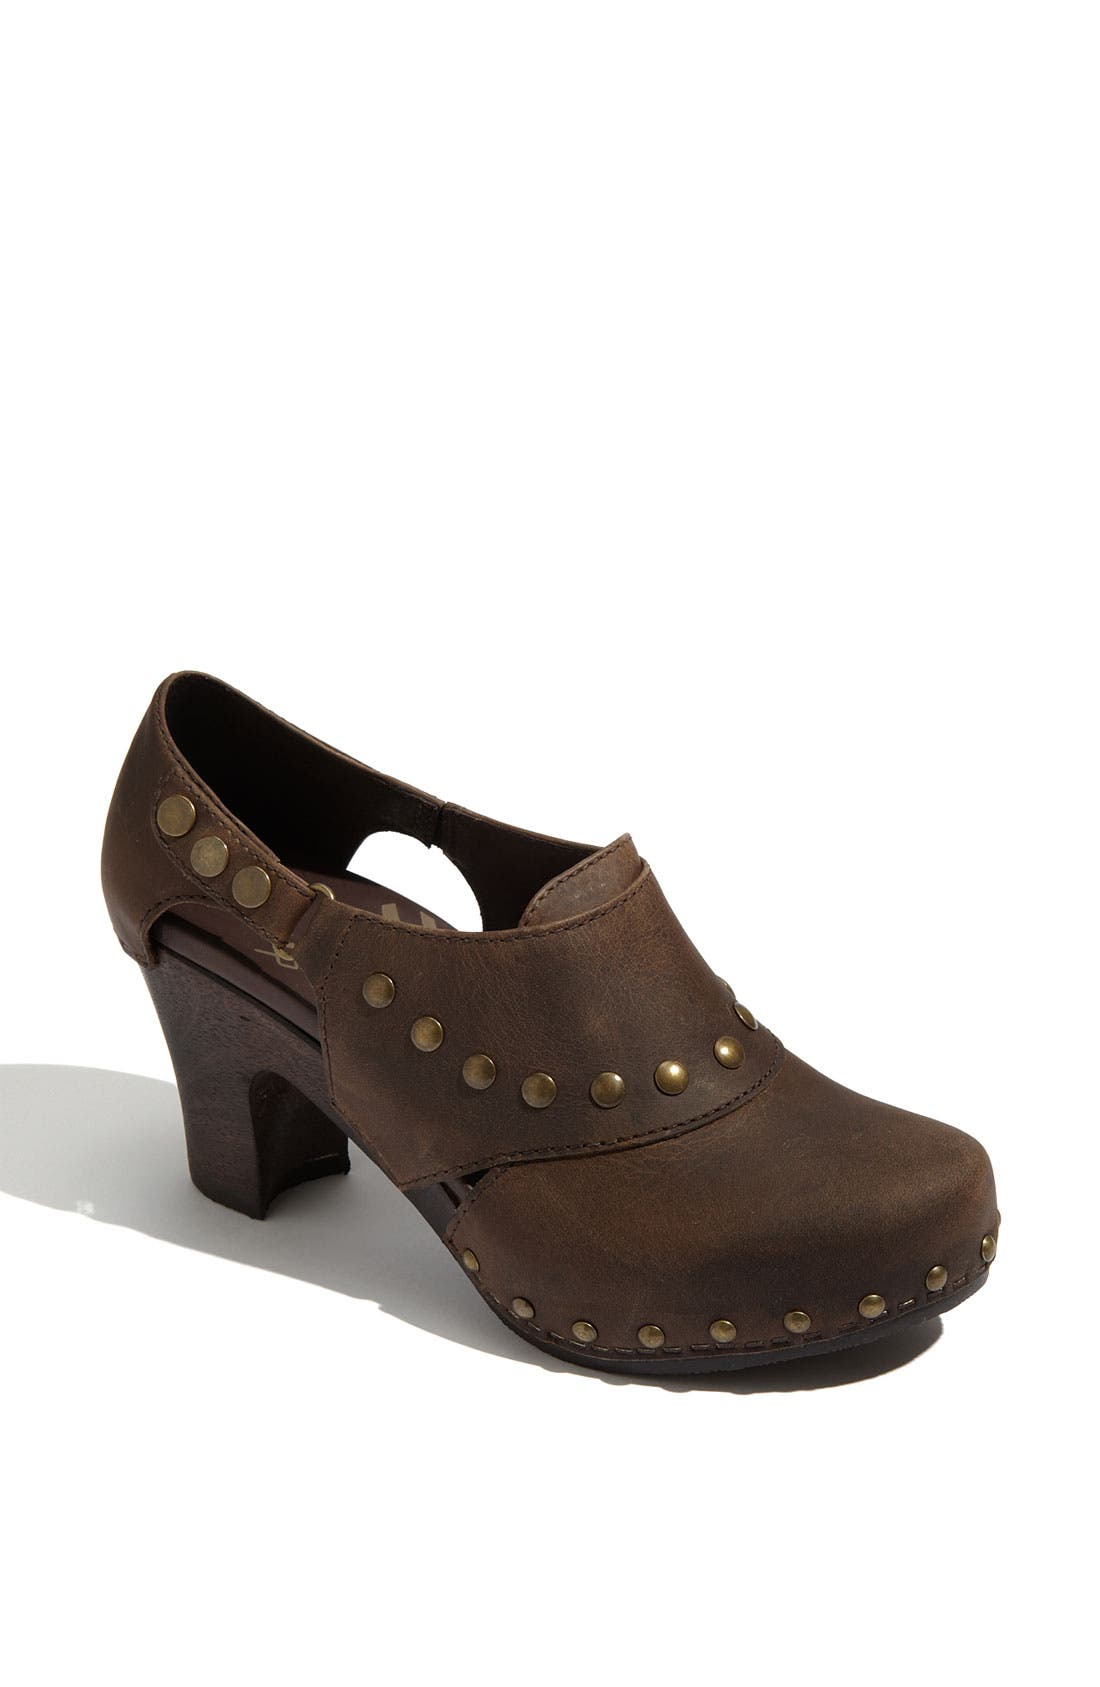 Alternate Image 1 Selected - Dansko 'Ryder' Clog